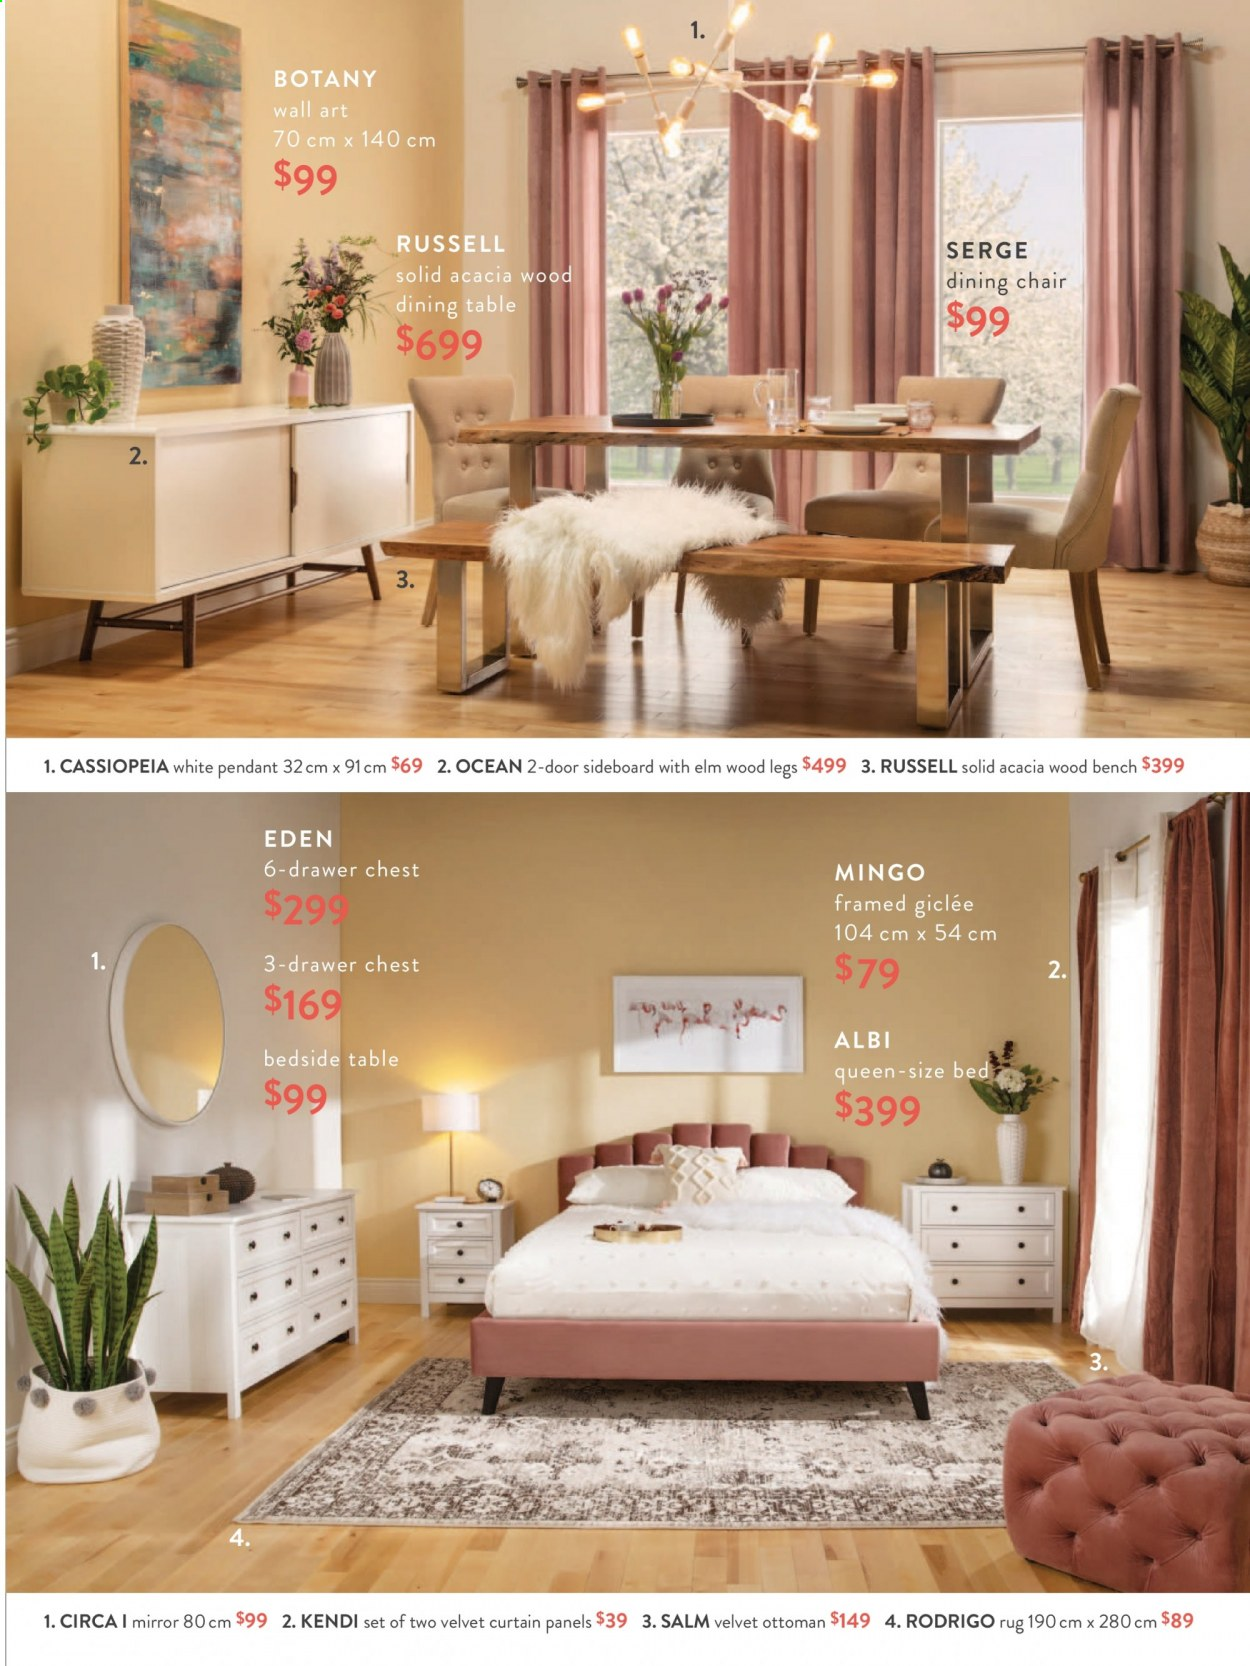 Structube Flyer - Sales products - bed, bedside table, Bench, dining table, door, drawer, mirror, rug, sideboard, solid, table, chair, pendant, ottoman. Page 5.